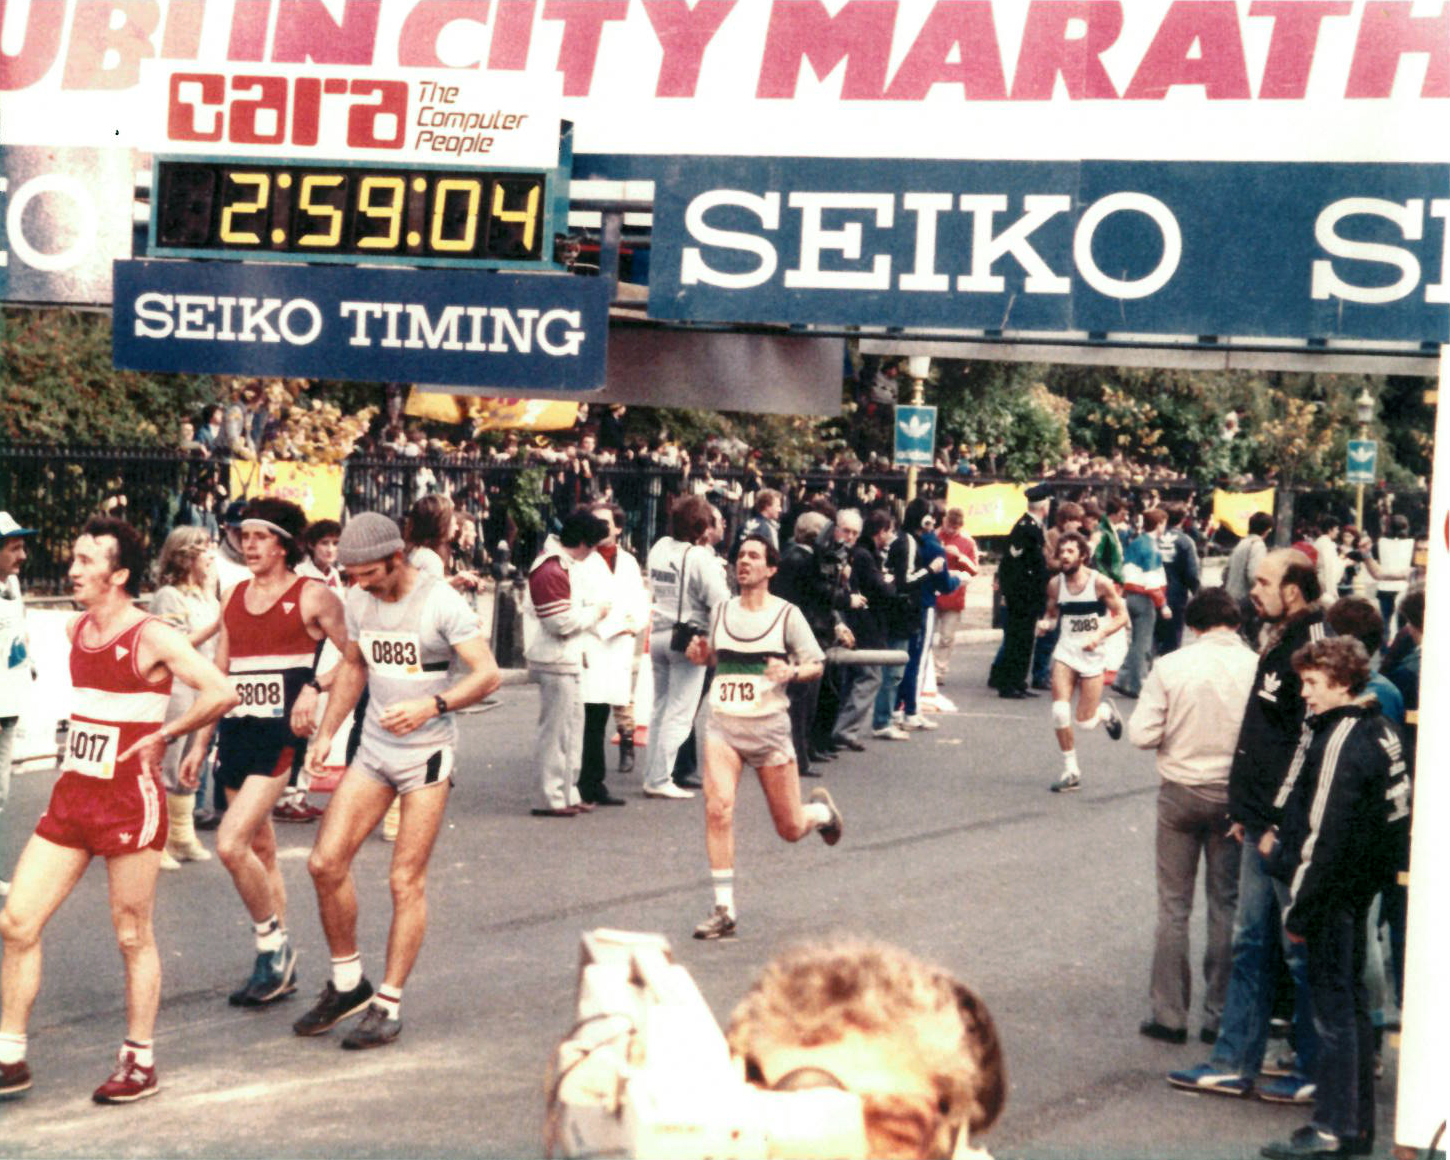 Clerkin (center, #3713) at the finish line of the 1983 Dublin Marathon. He finished with a sub-three-hour time after four friendly bets.